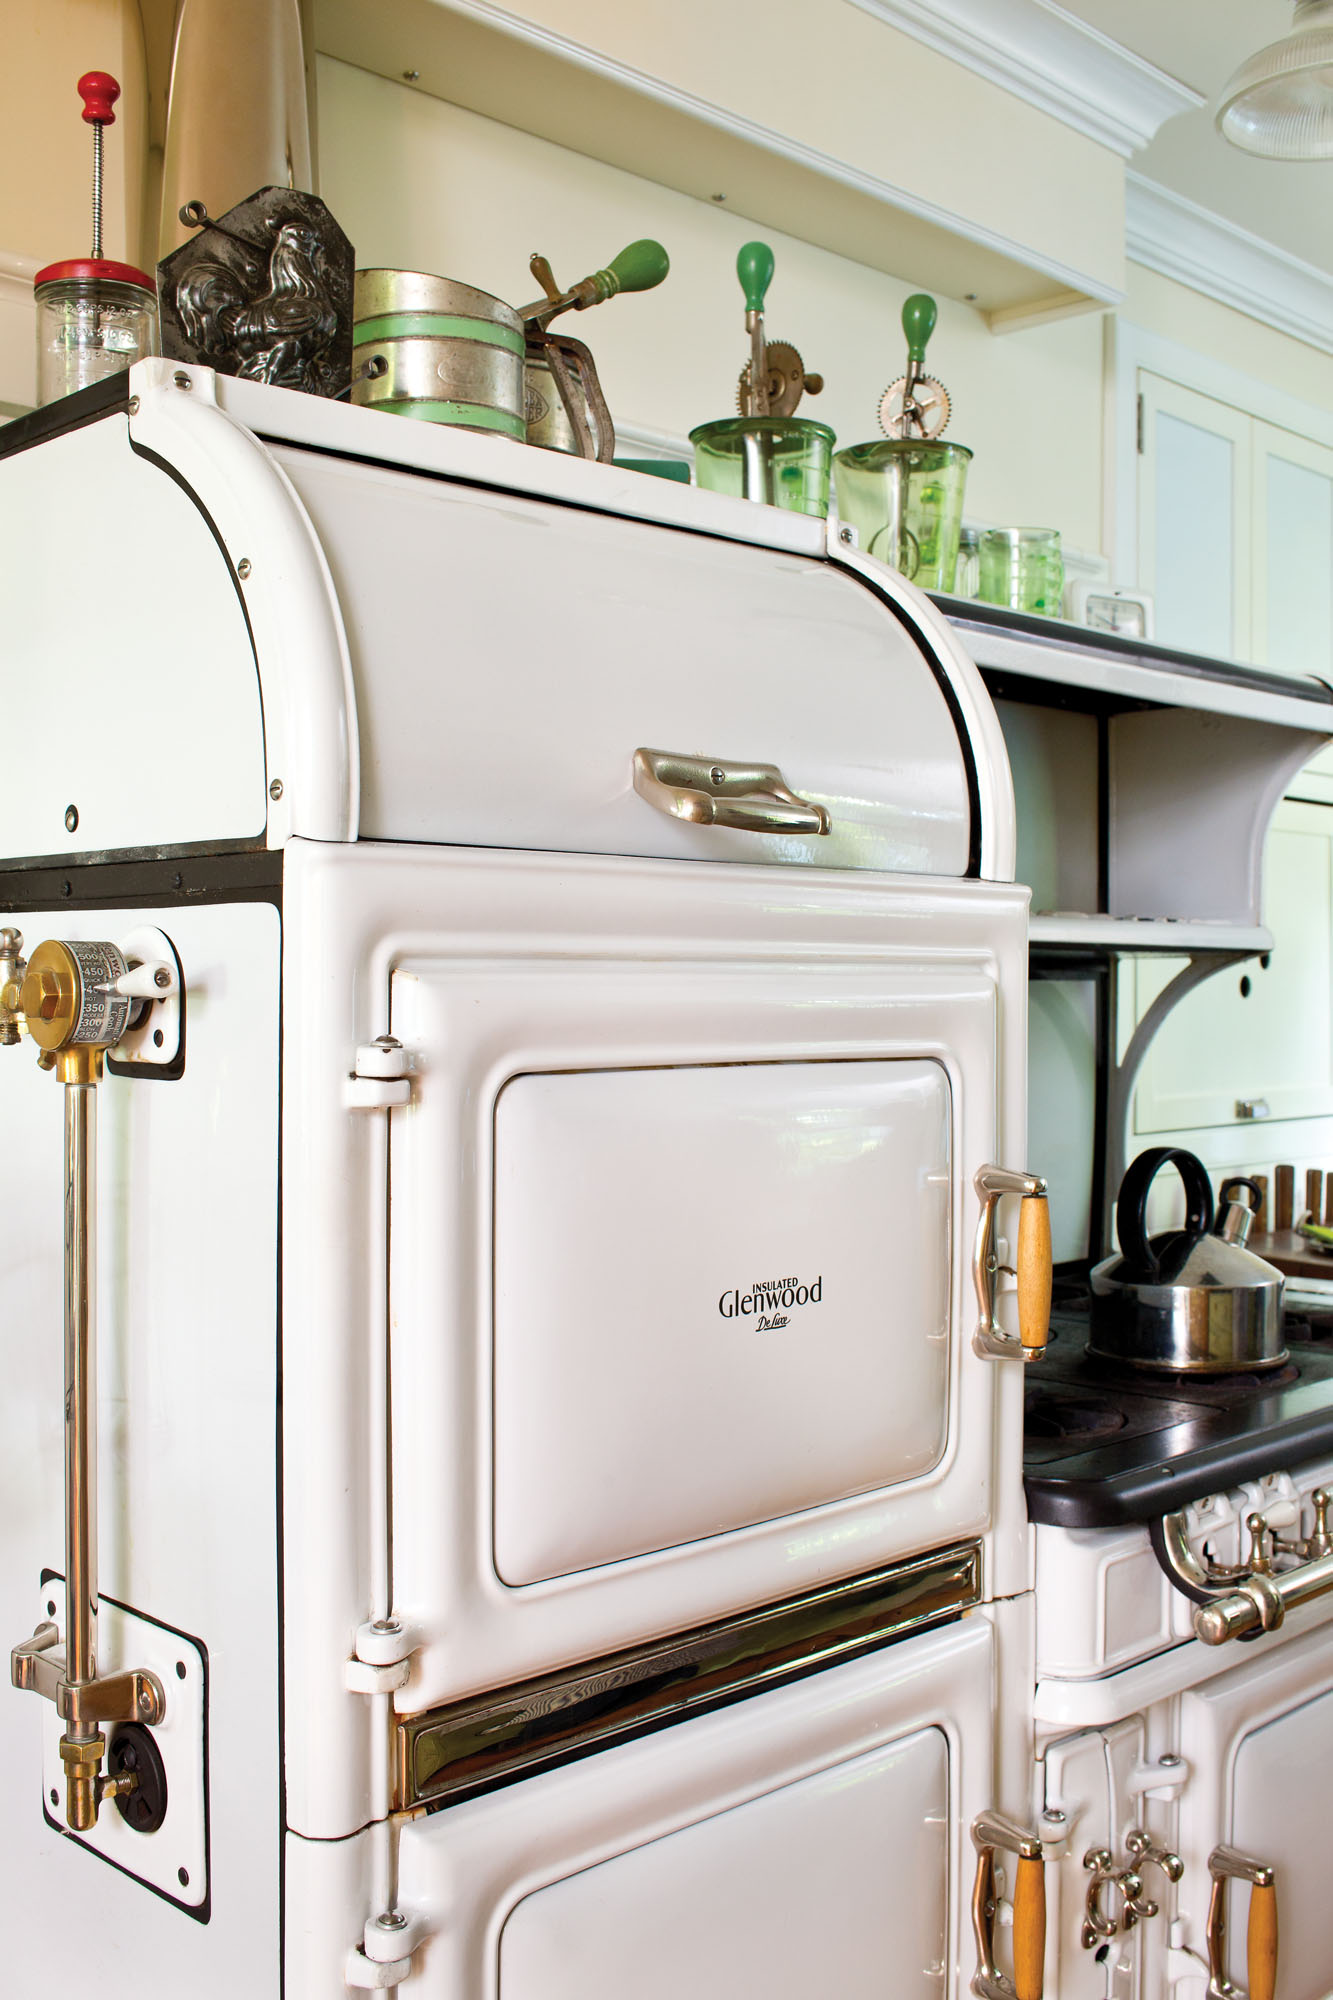 The six-burner, two-oven Glenwood SNJ was restored by Erickson's Antique Stoves.